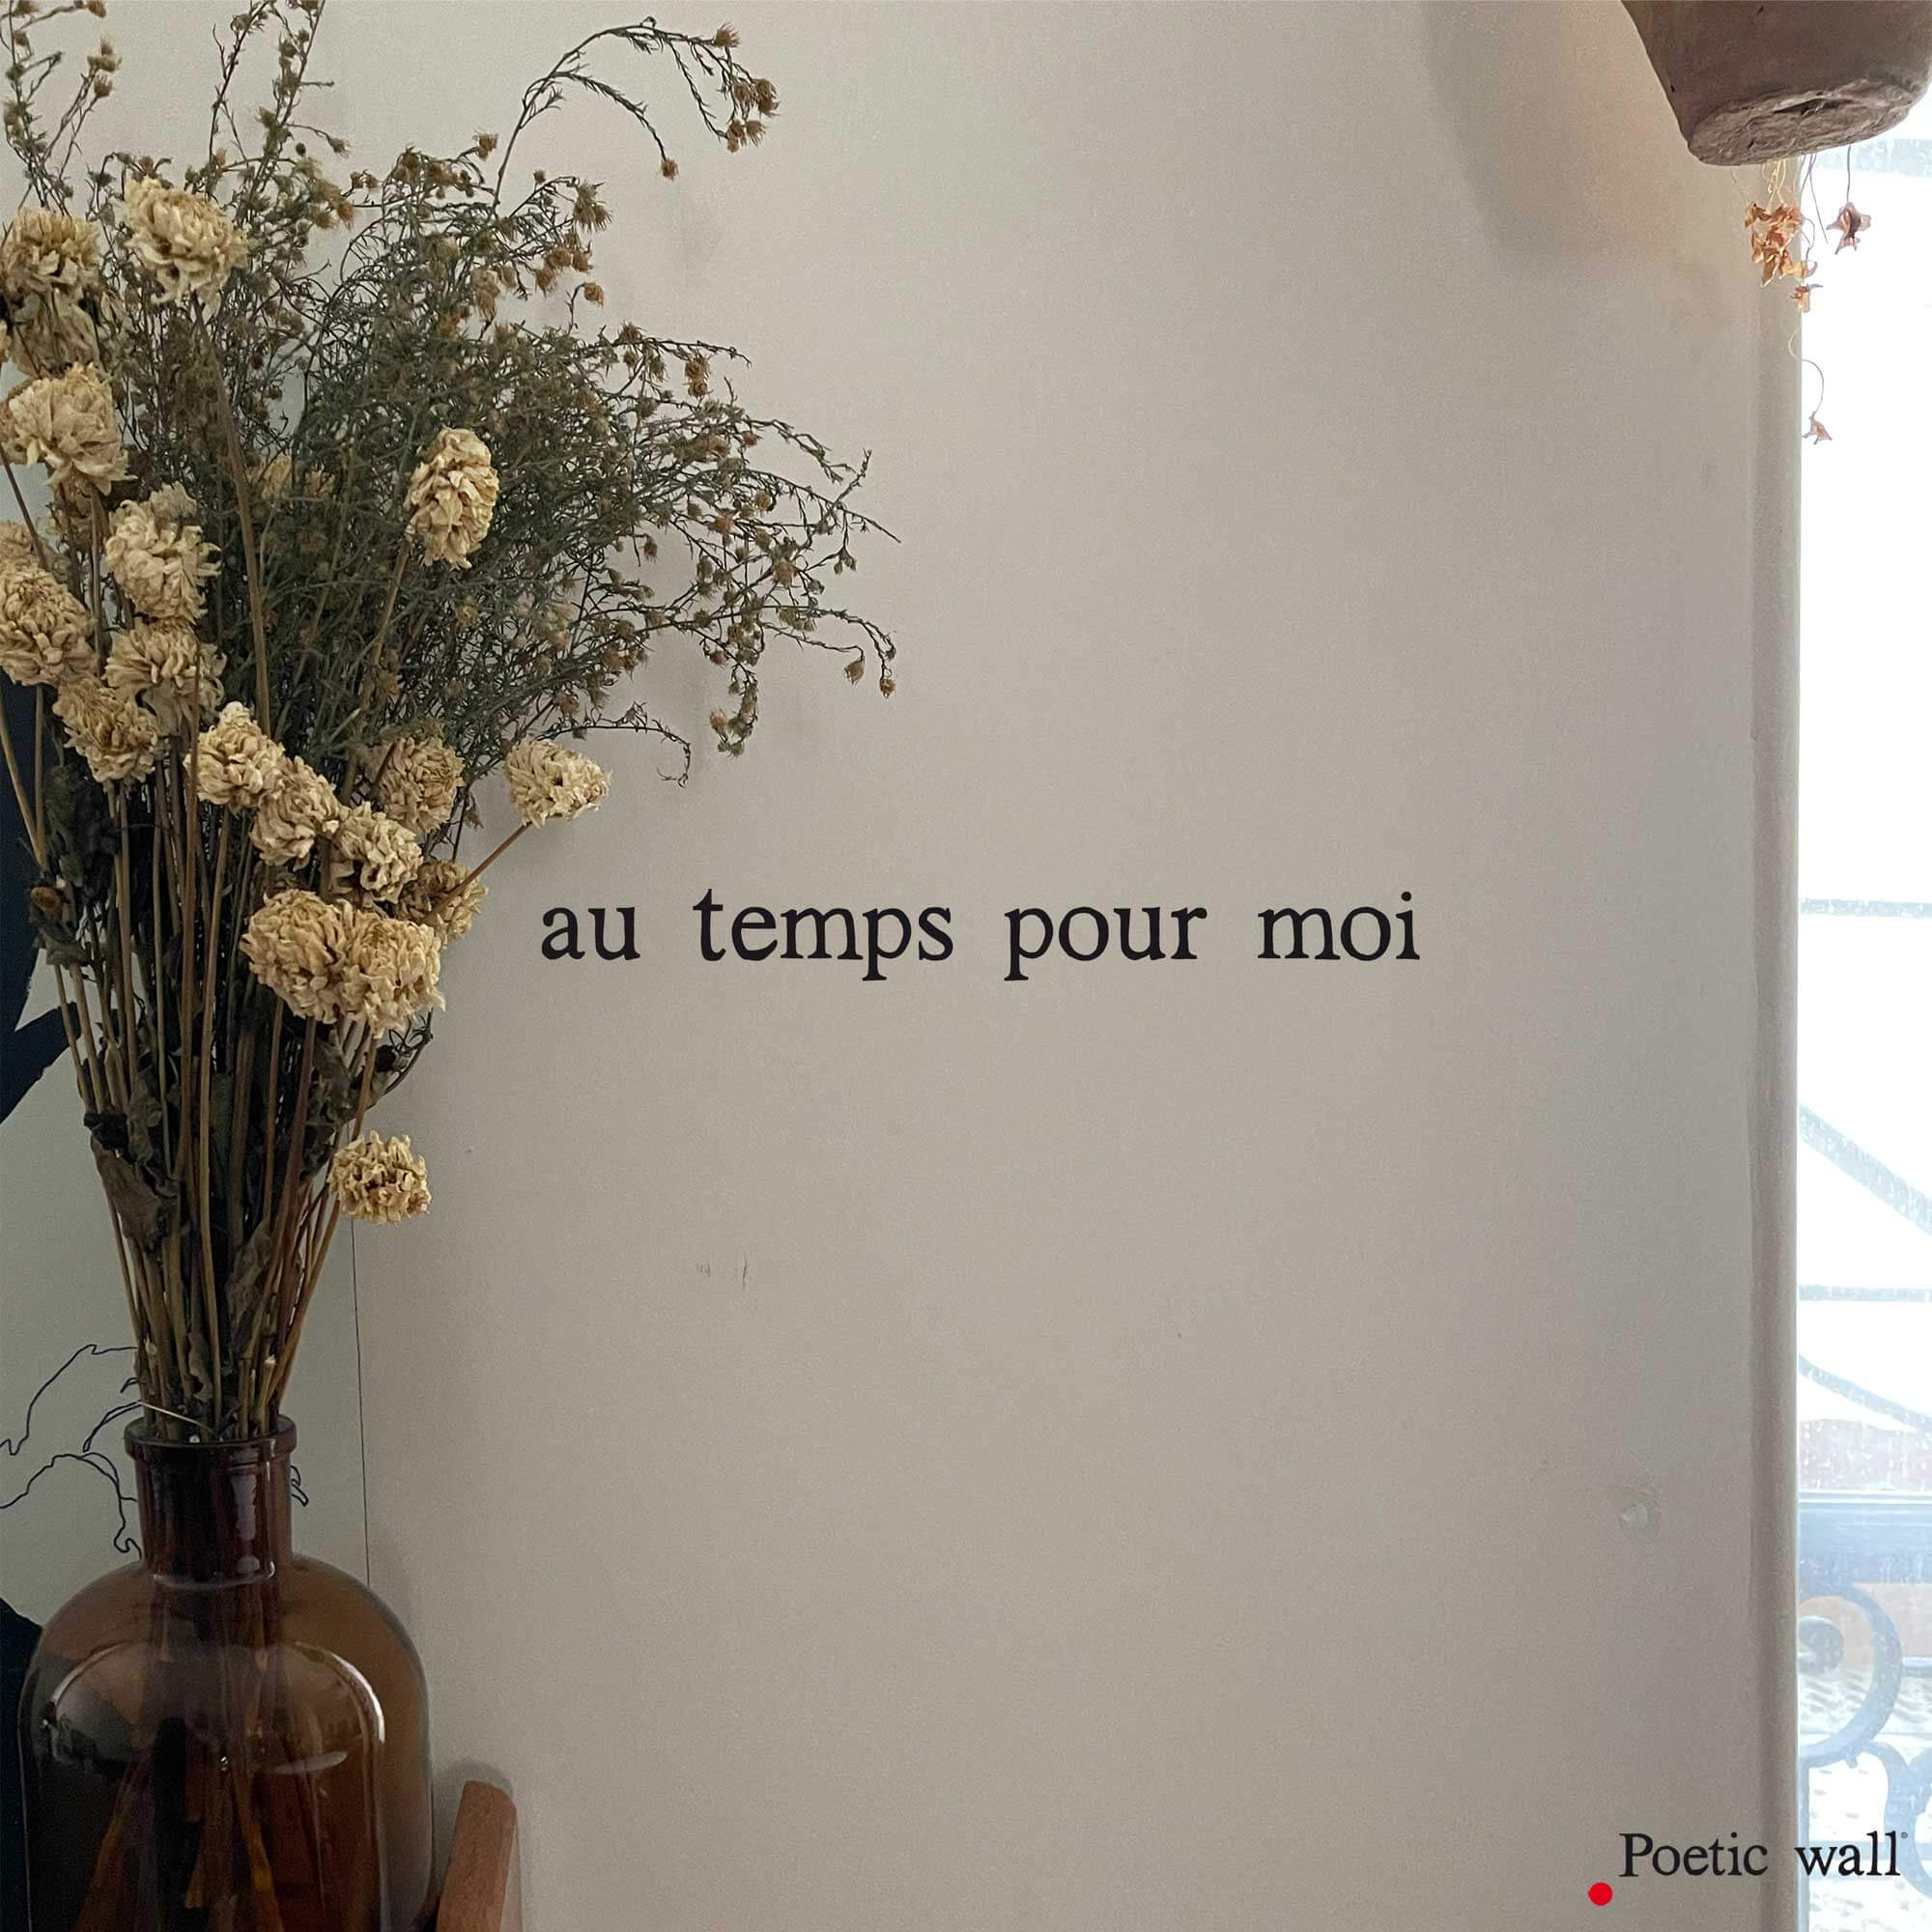 stickers texte citation originale by Poetic Wall